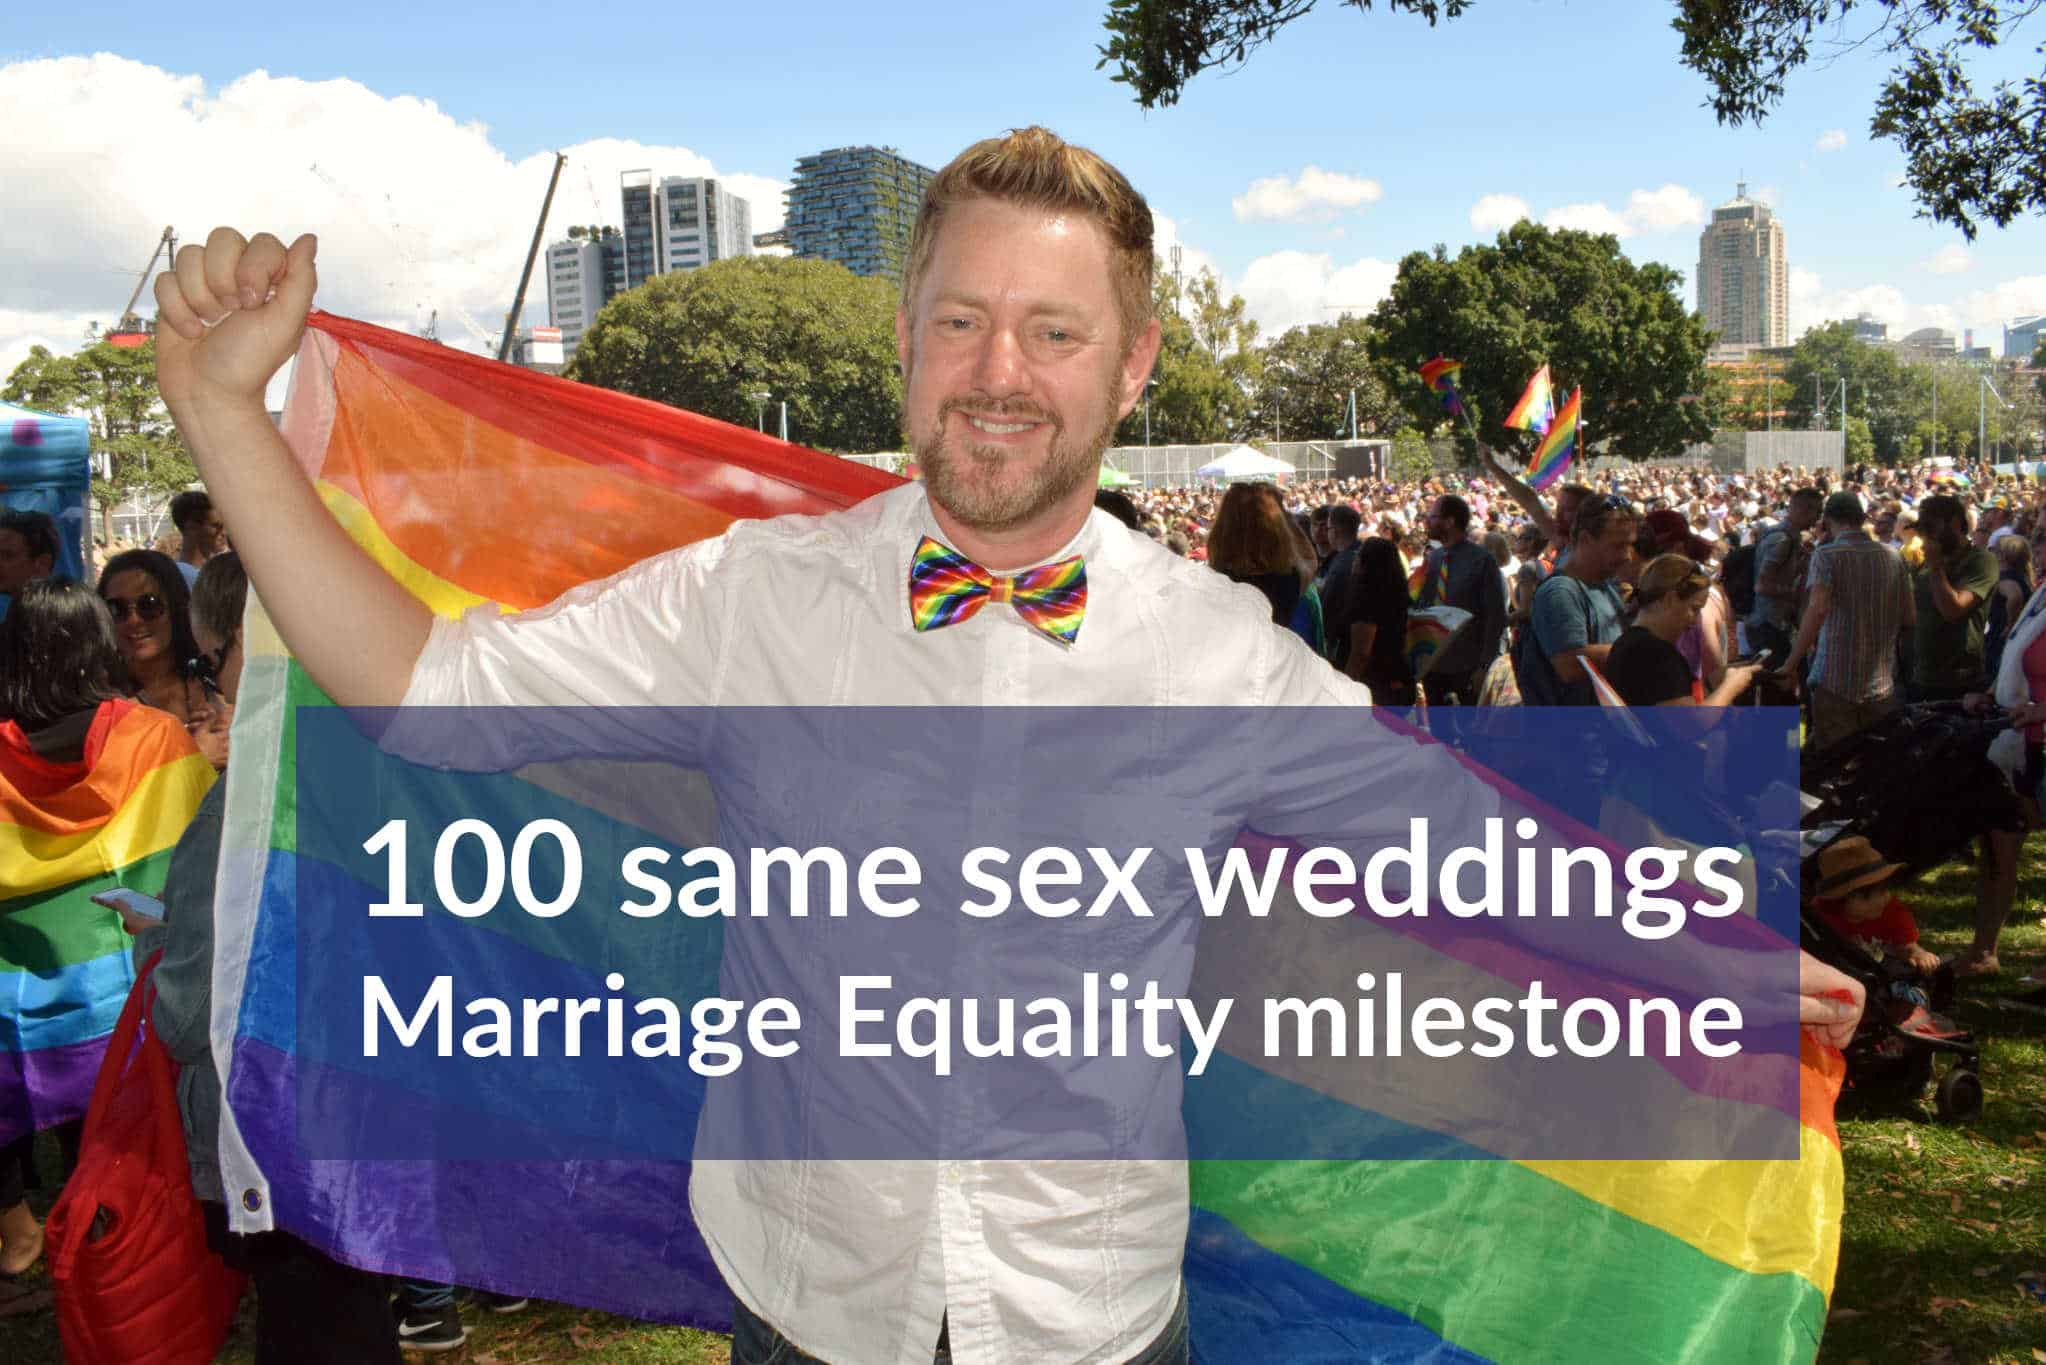 Stephen Lee Same Sex Marriage Celebrant Sydney 100 weddings